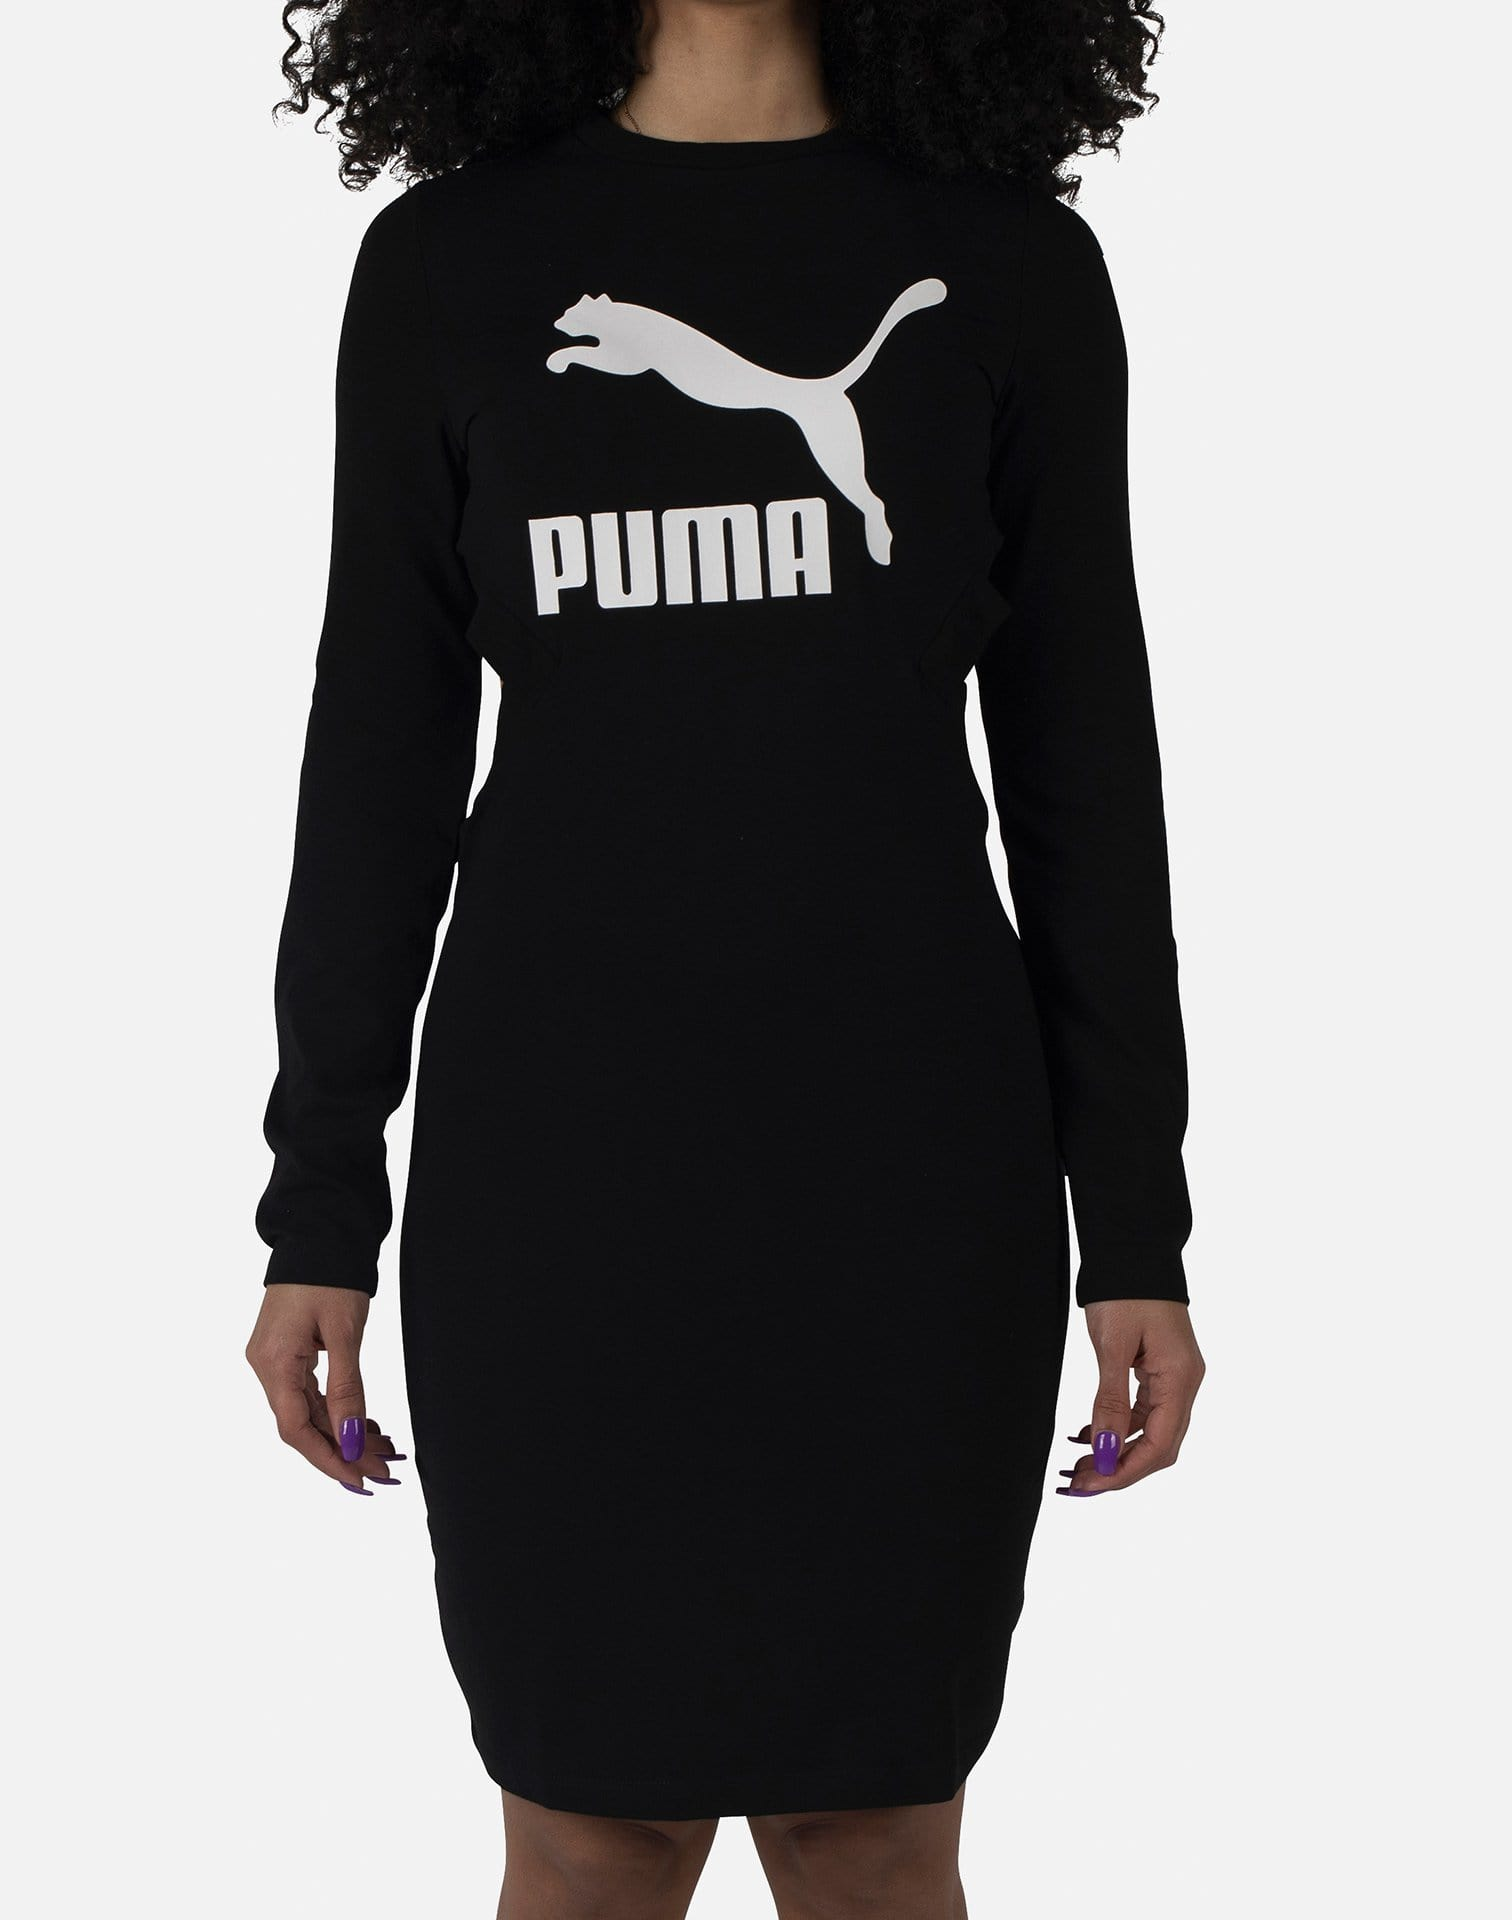 PUMA Women's Classics Logo Tight Dress